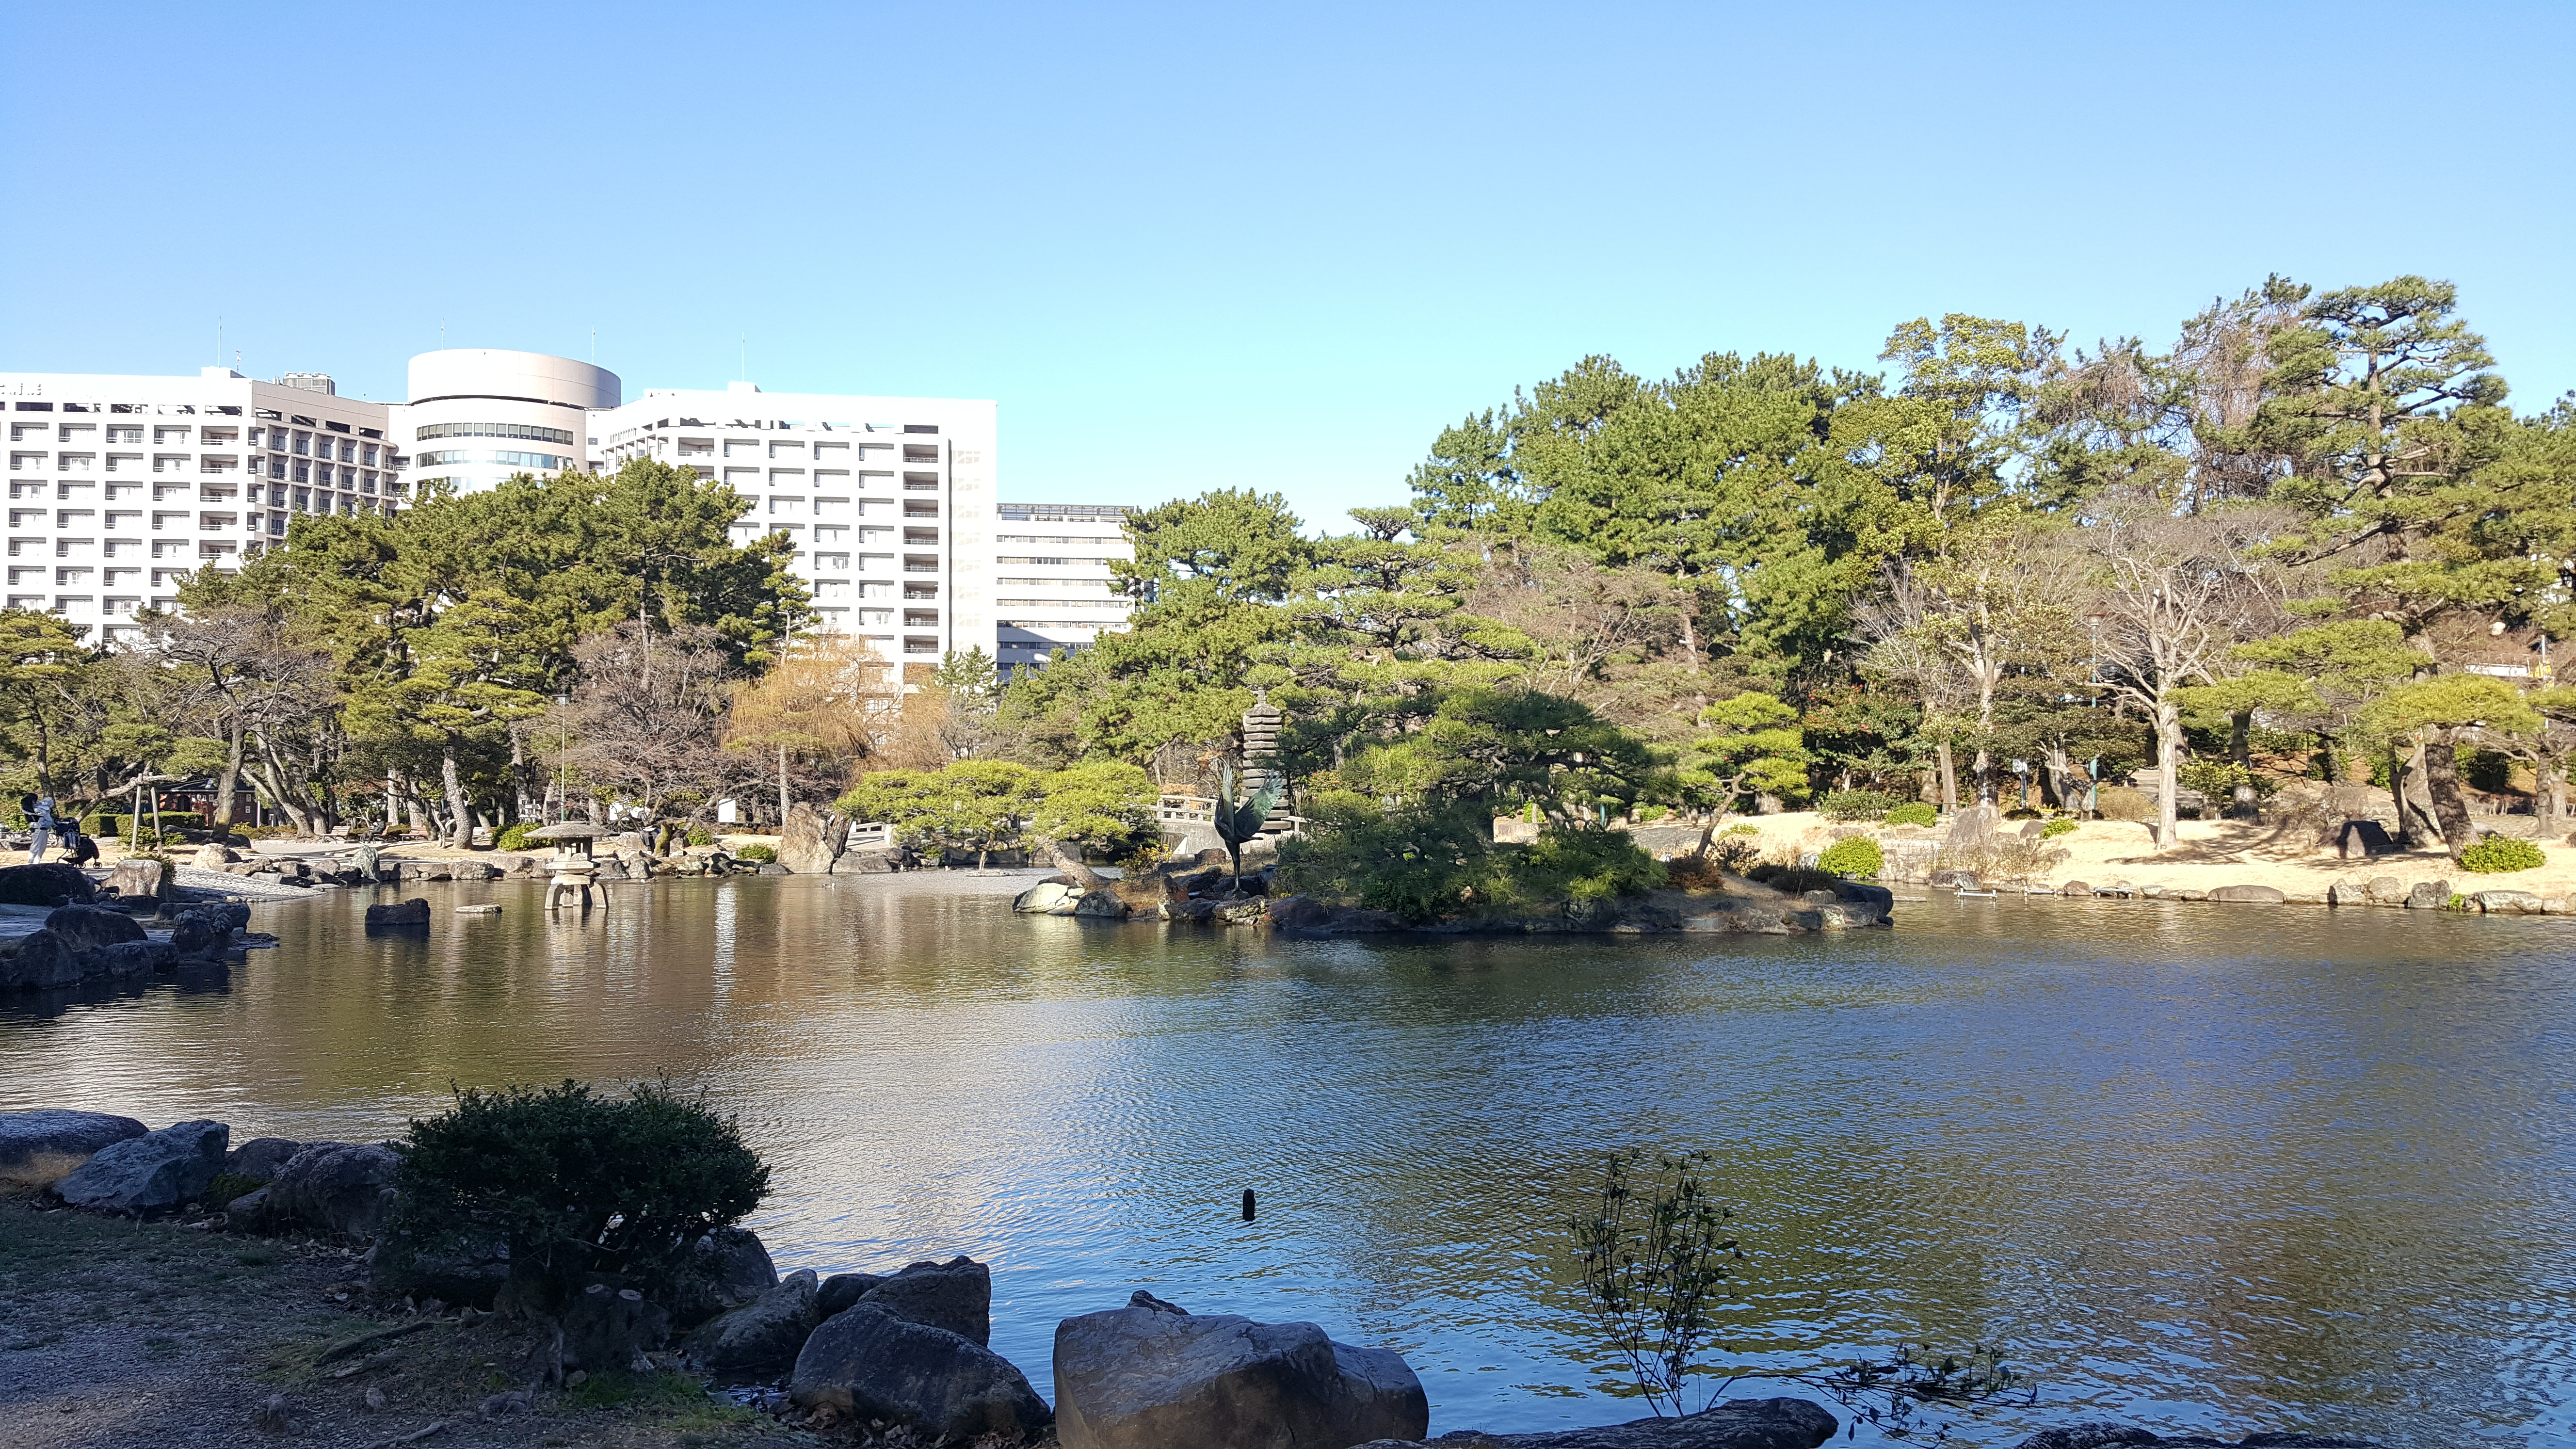 Main Pond in Tsuruma Park, Nagoya